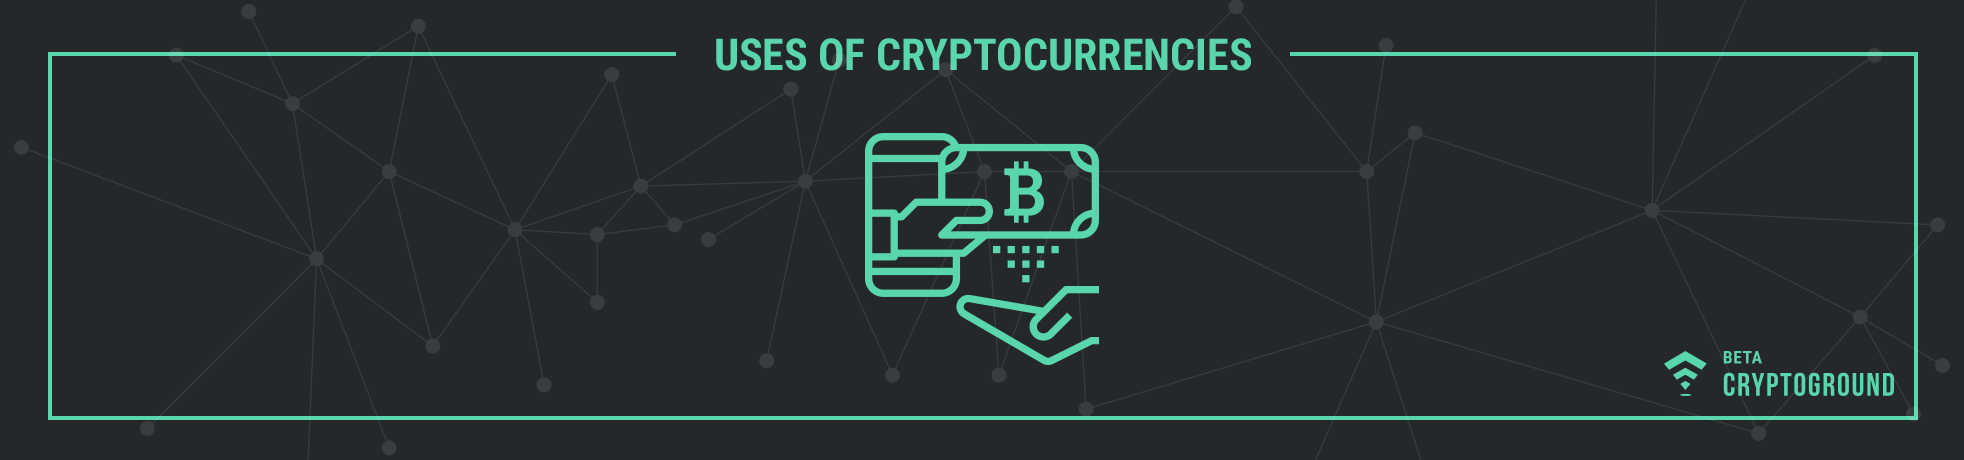 Uses of Cryptocurrencies